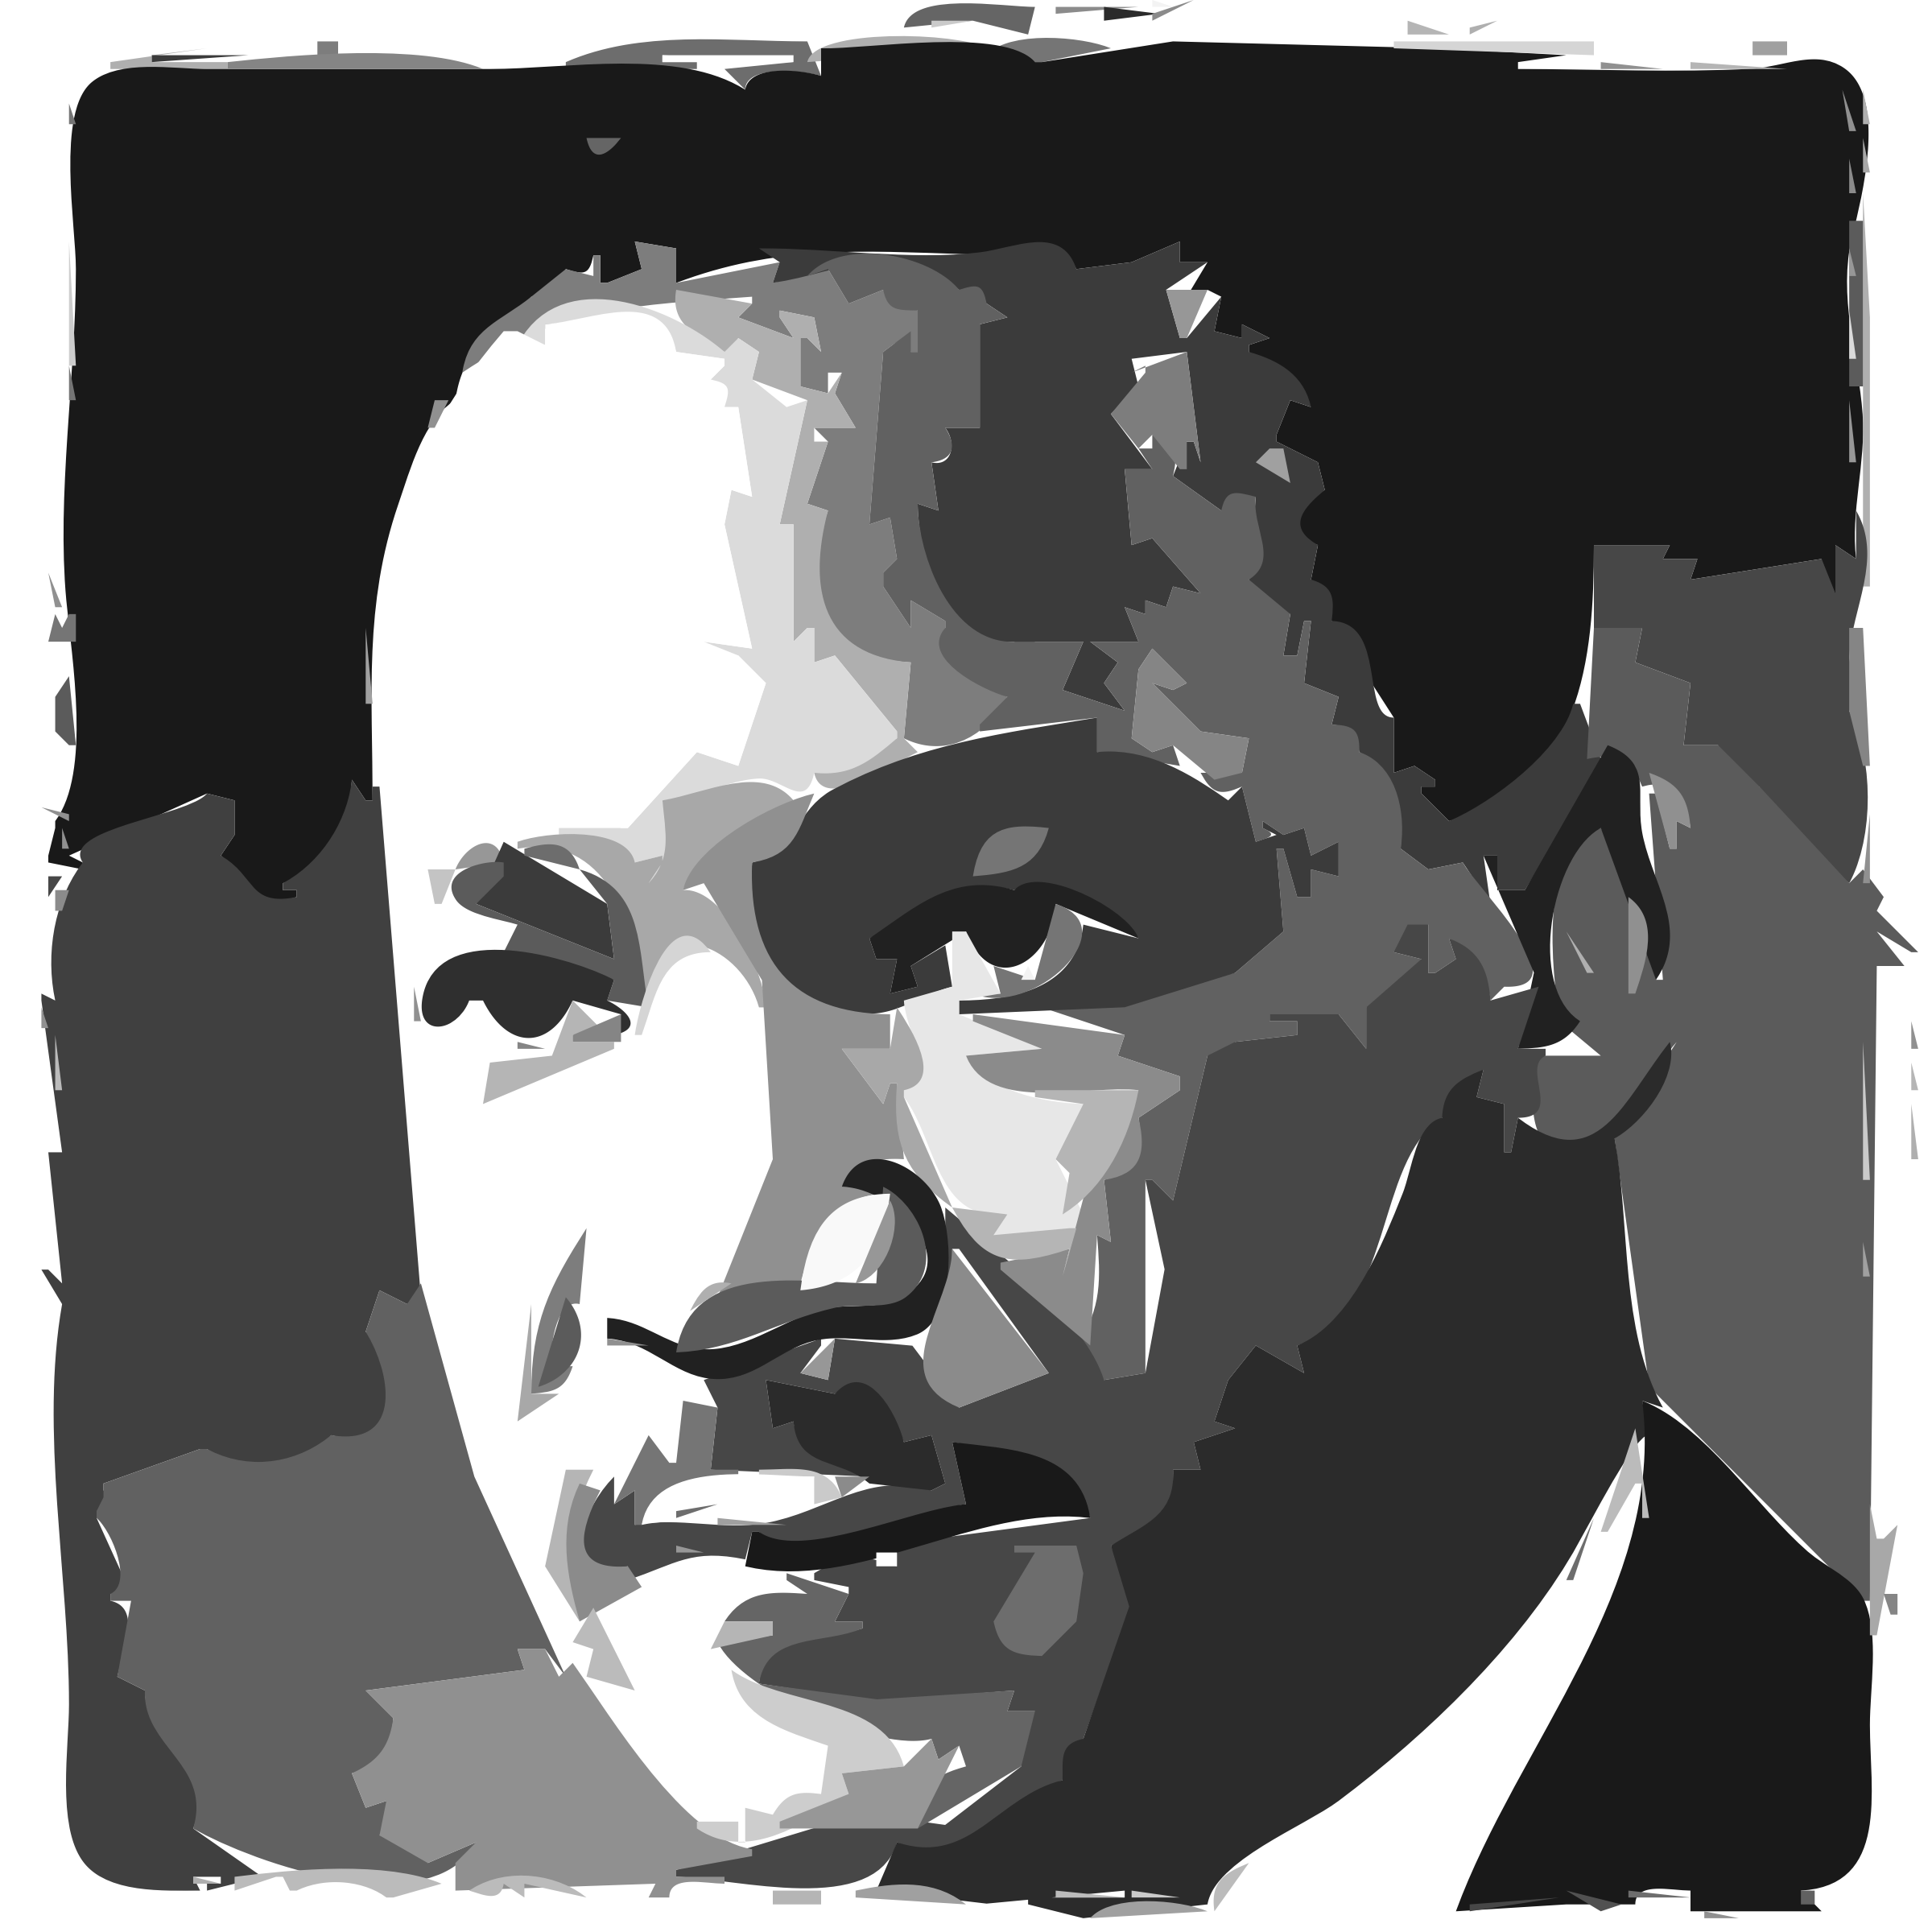 martin luther king jr day clipart clipart panda free clipart images rh clipartpanda com dr martin luther king clipart animated martin luther king clipart